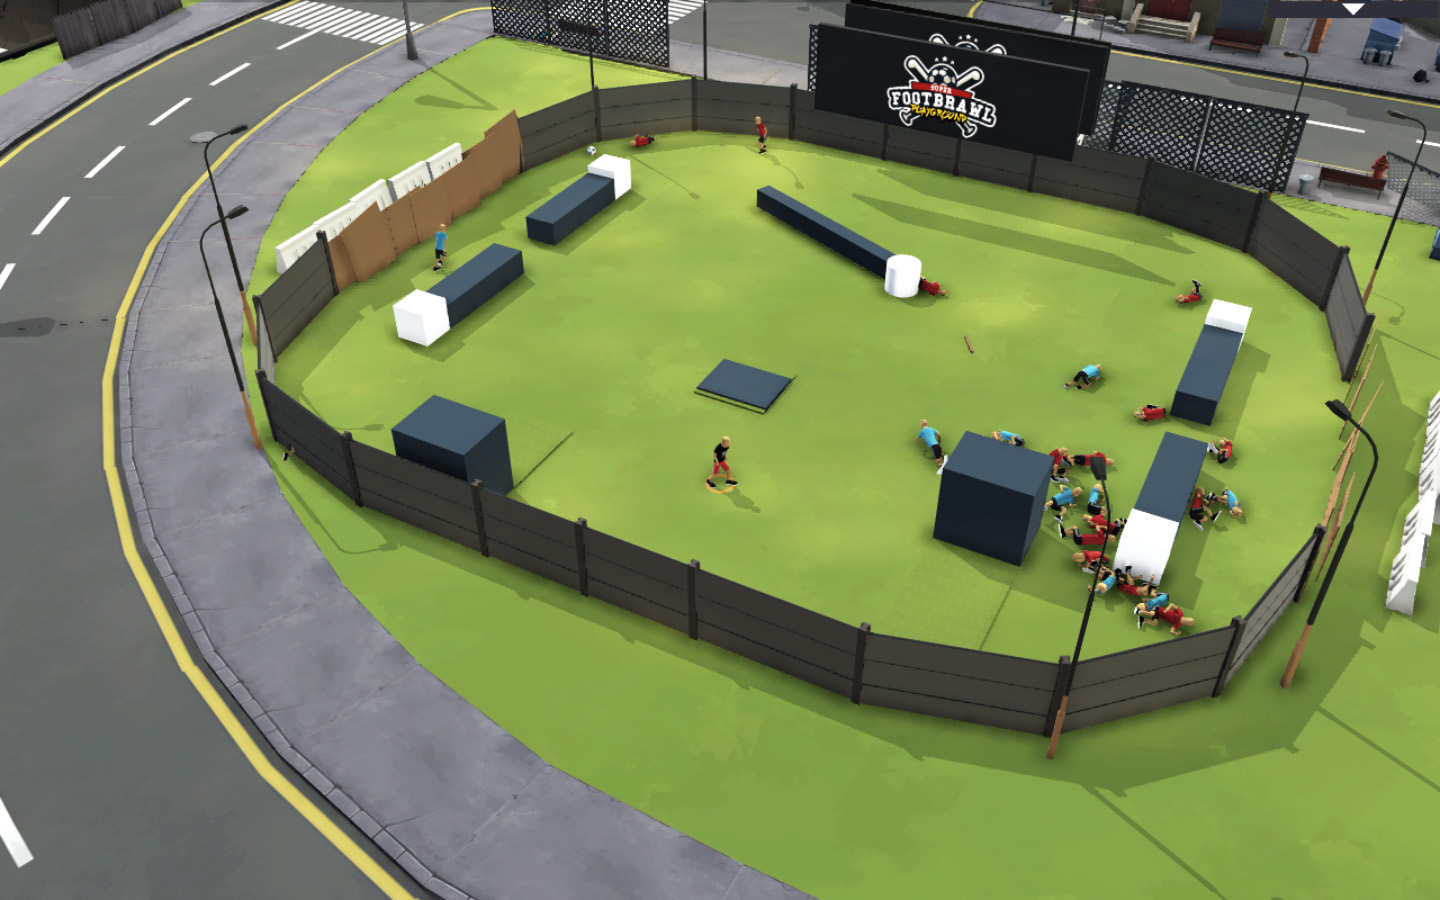 Footbrawl Playground v 0.04 Beta